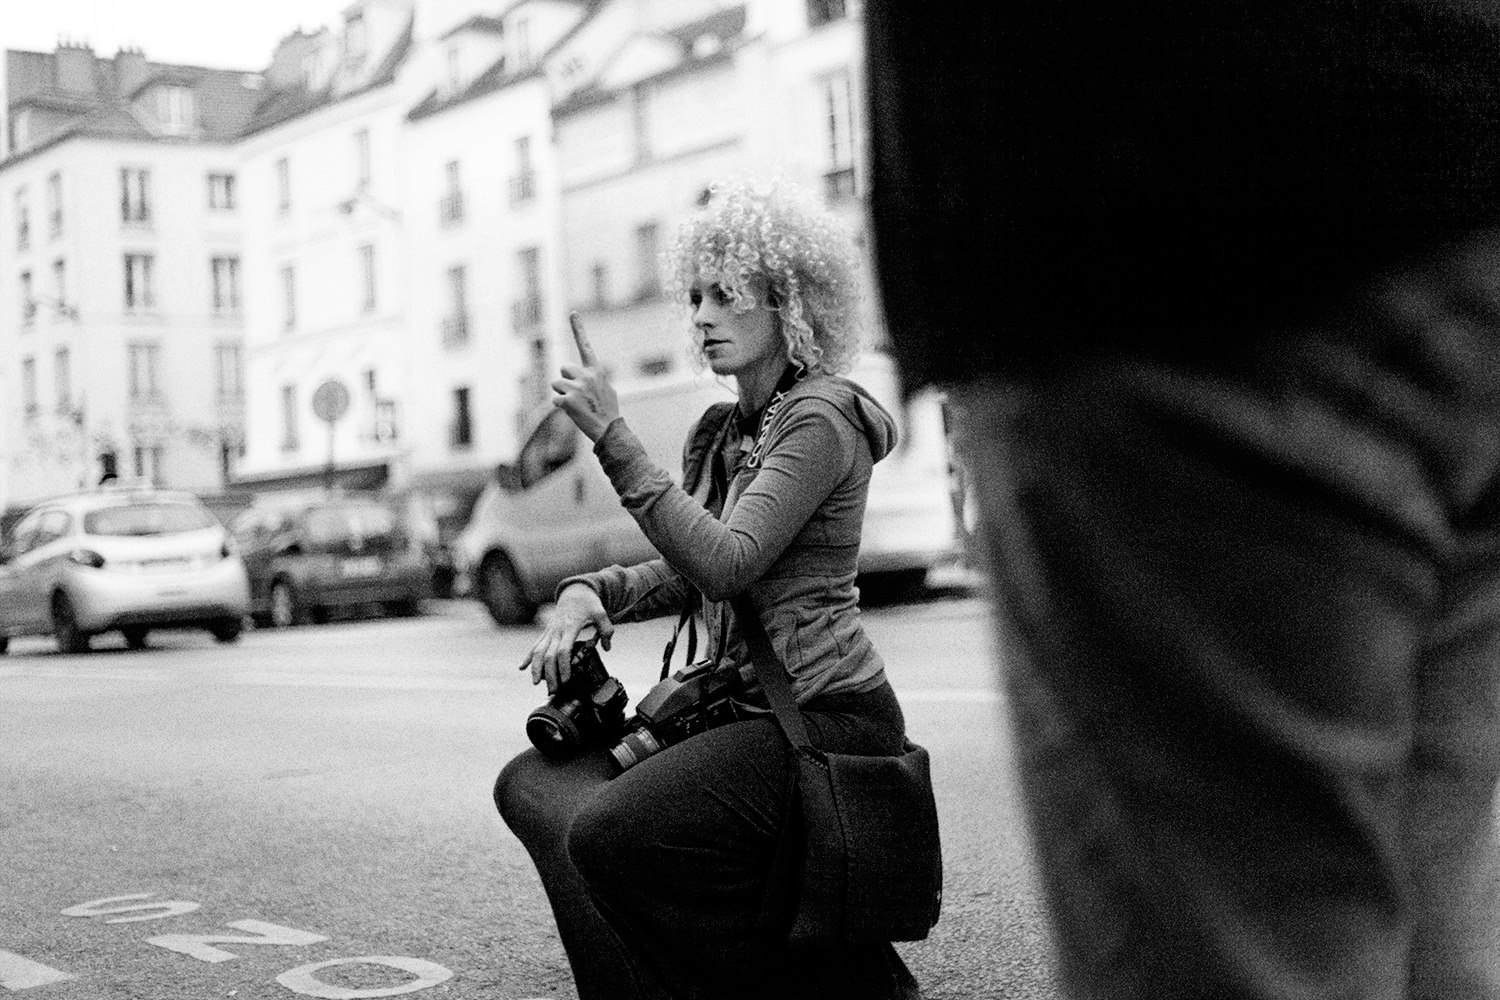 Photo by a French guy named Tom who attended my Paris photography class.